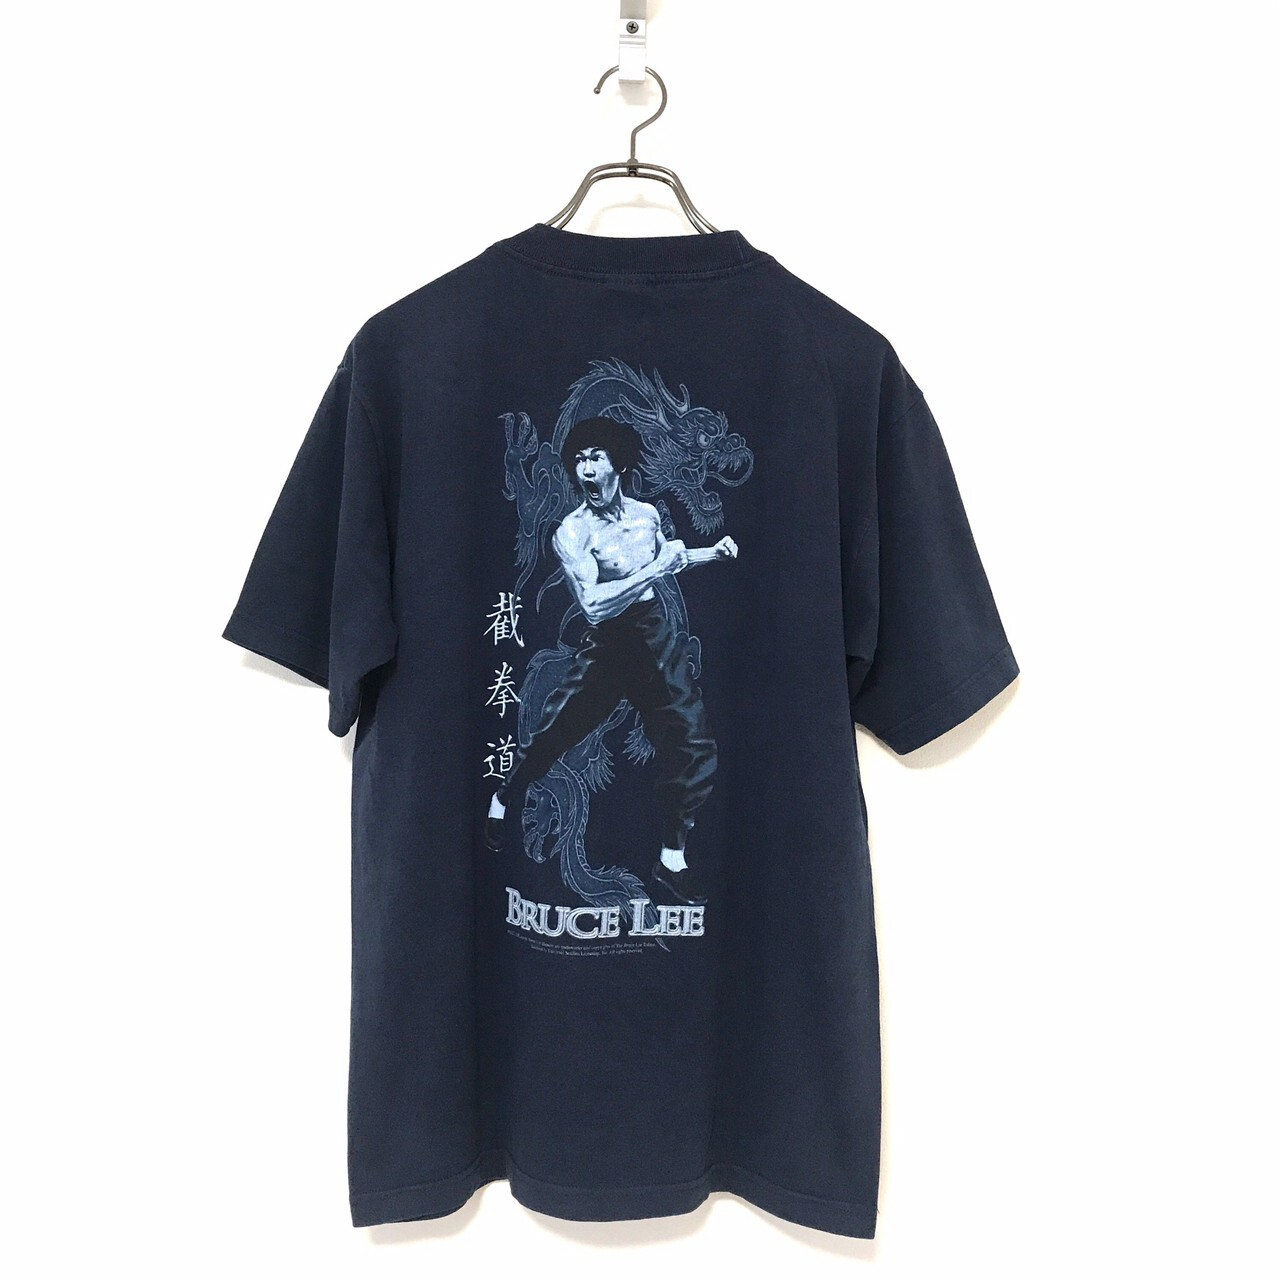 90's ALSTYLE APPAREL BLUCE LEE Official T-shirt M Navy